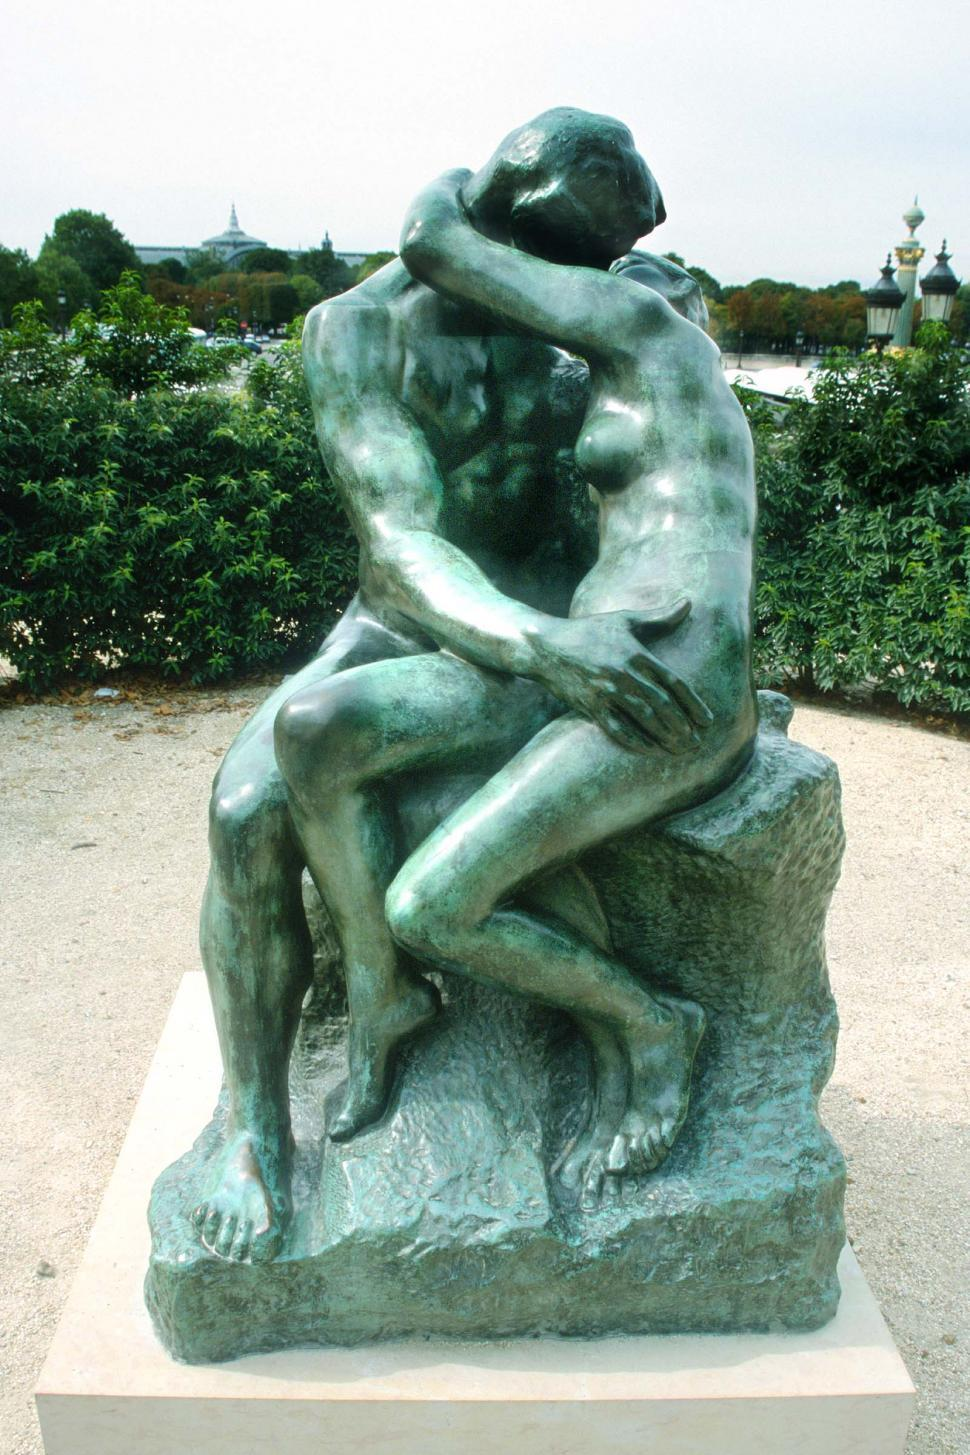 Download Free Stock Photo of france the kiss kissing kiss love landmark romance romantic bronze sculpture french europe european paris statue lovers Auguste Rodin couple